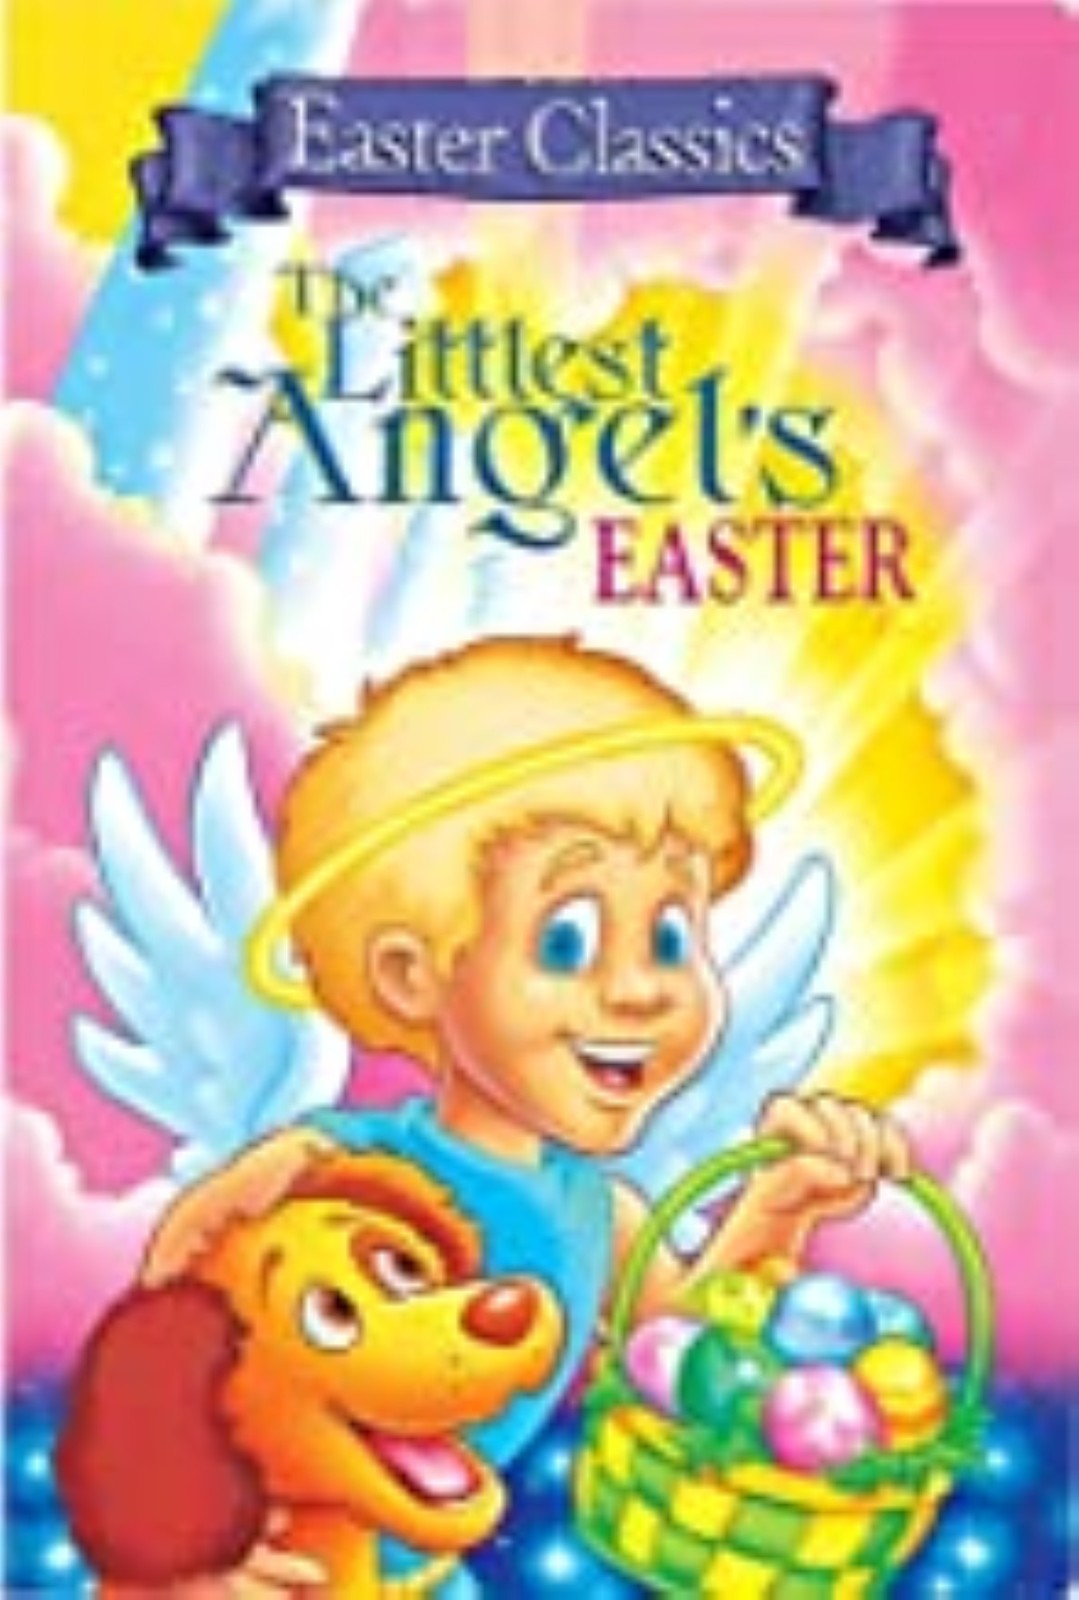 The Littlest Angel's Easter Dvd